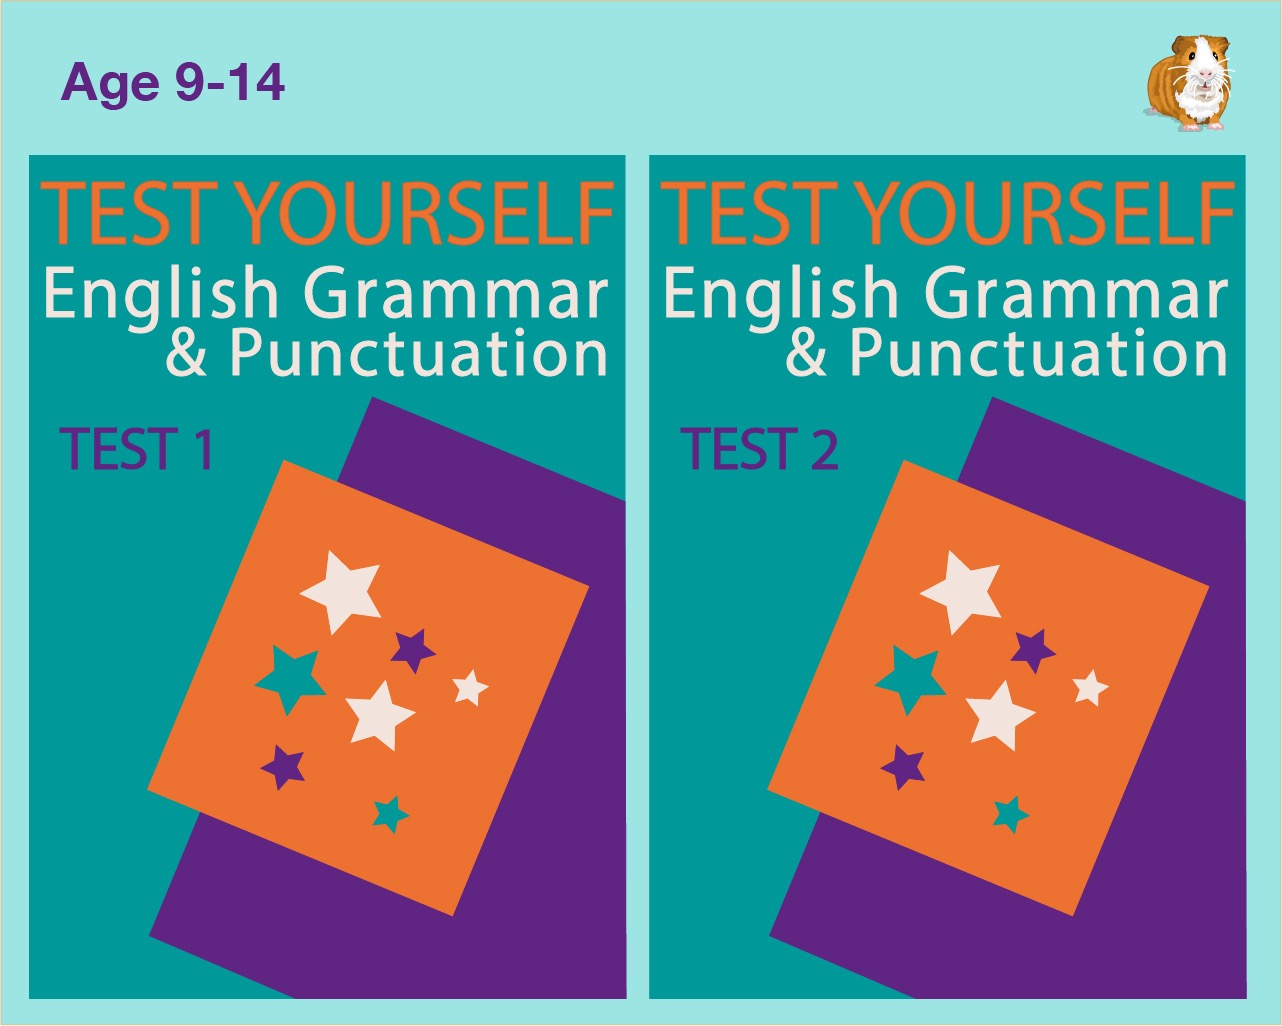 Assessment Test 1 & 2 (Test Your English Grammar And Punctuation Skills) 9-14 years